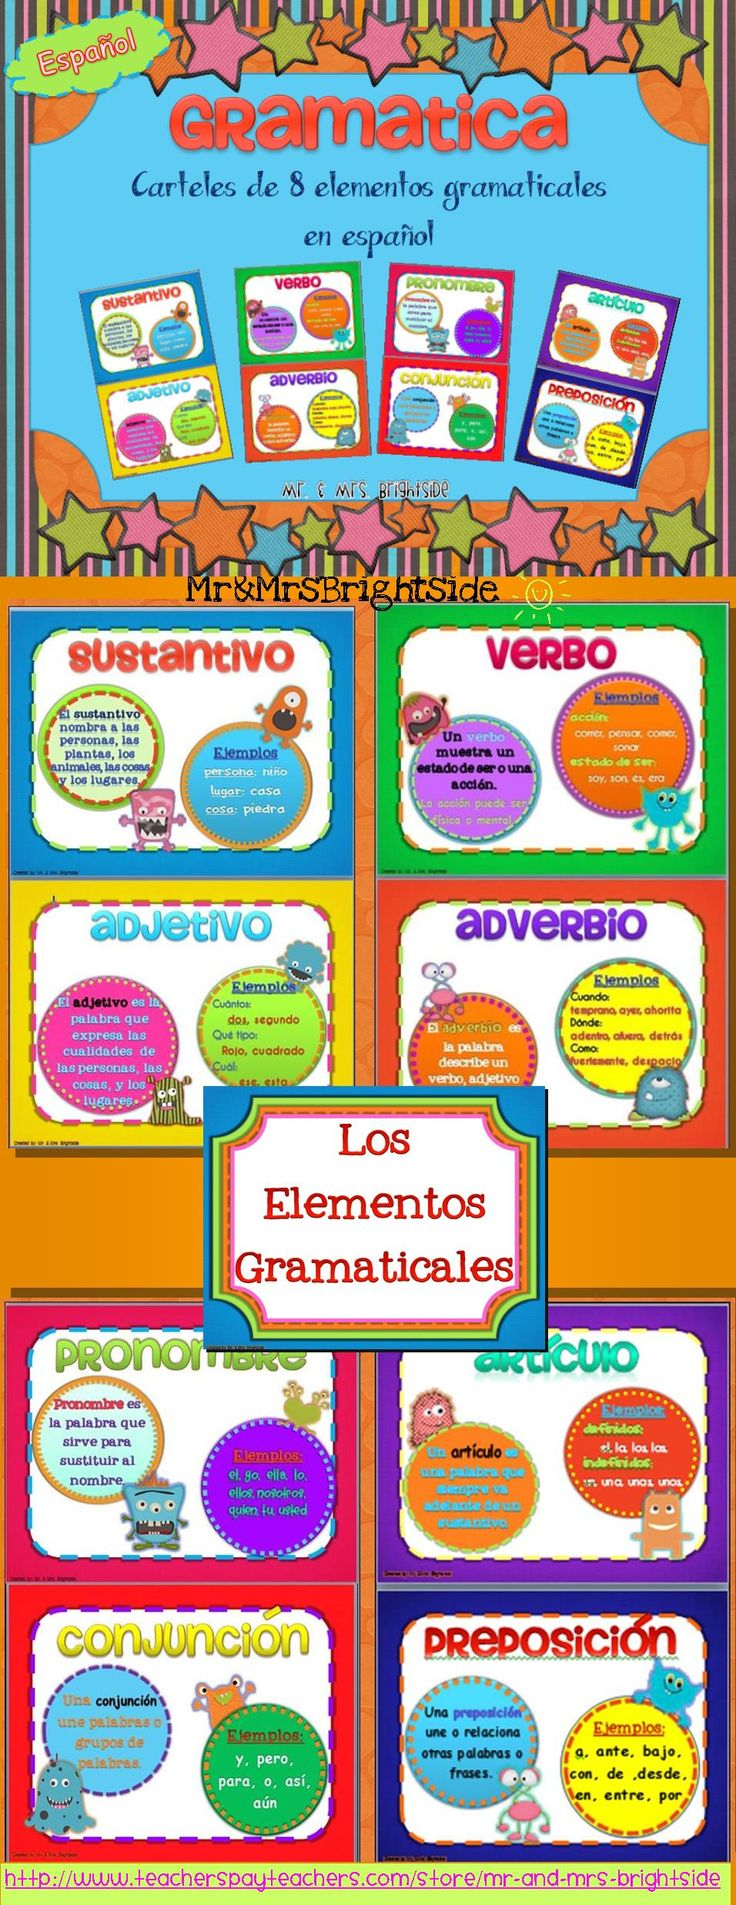 Grammar posters in Spanish for use in a bilingual or dual language classroom…